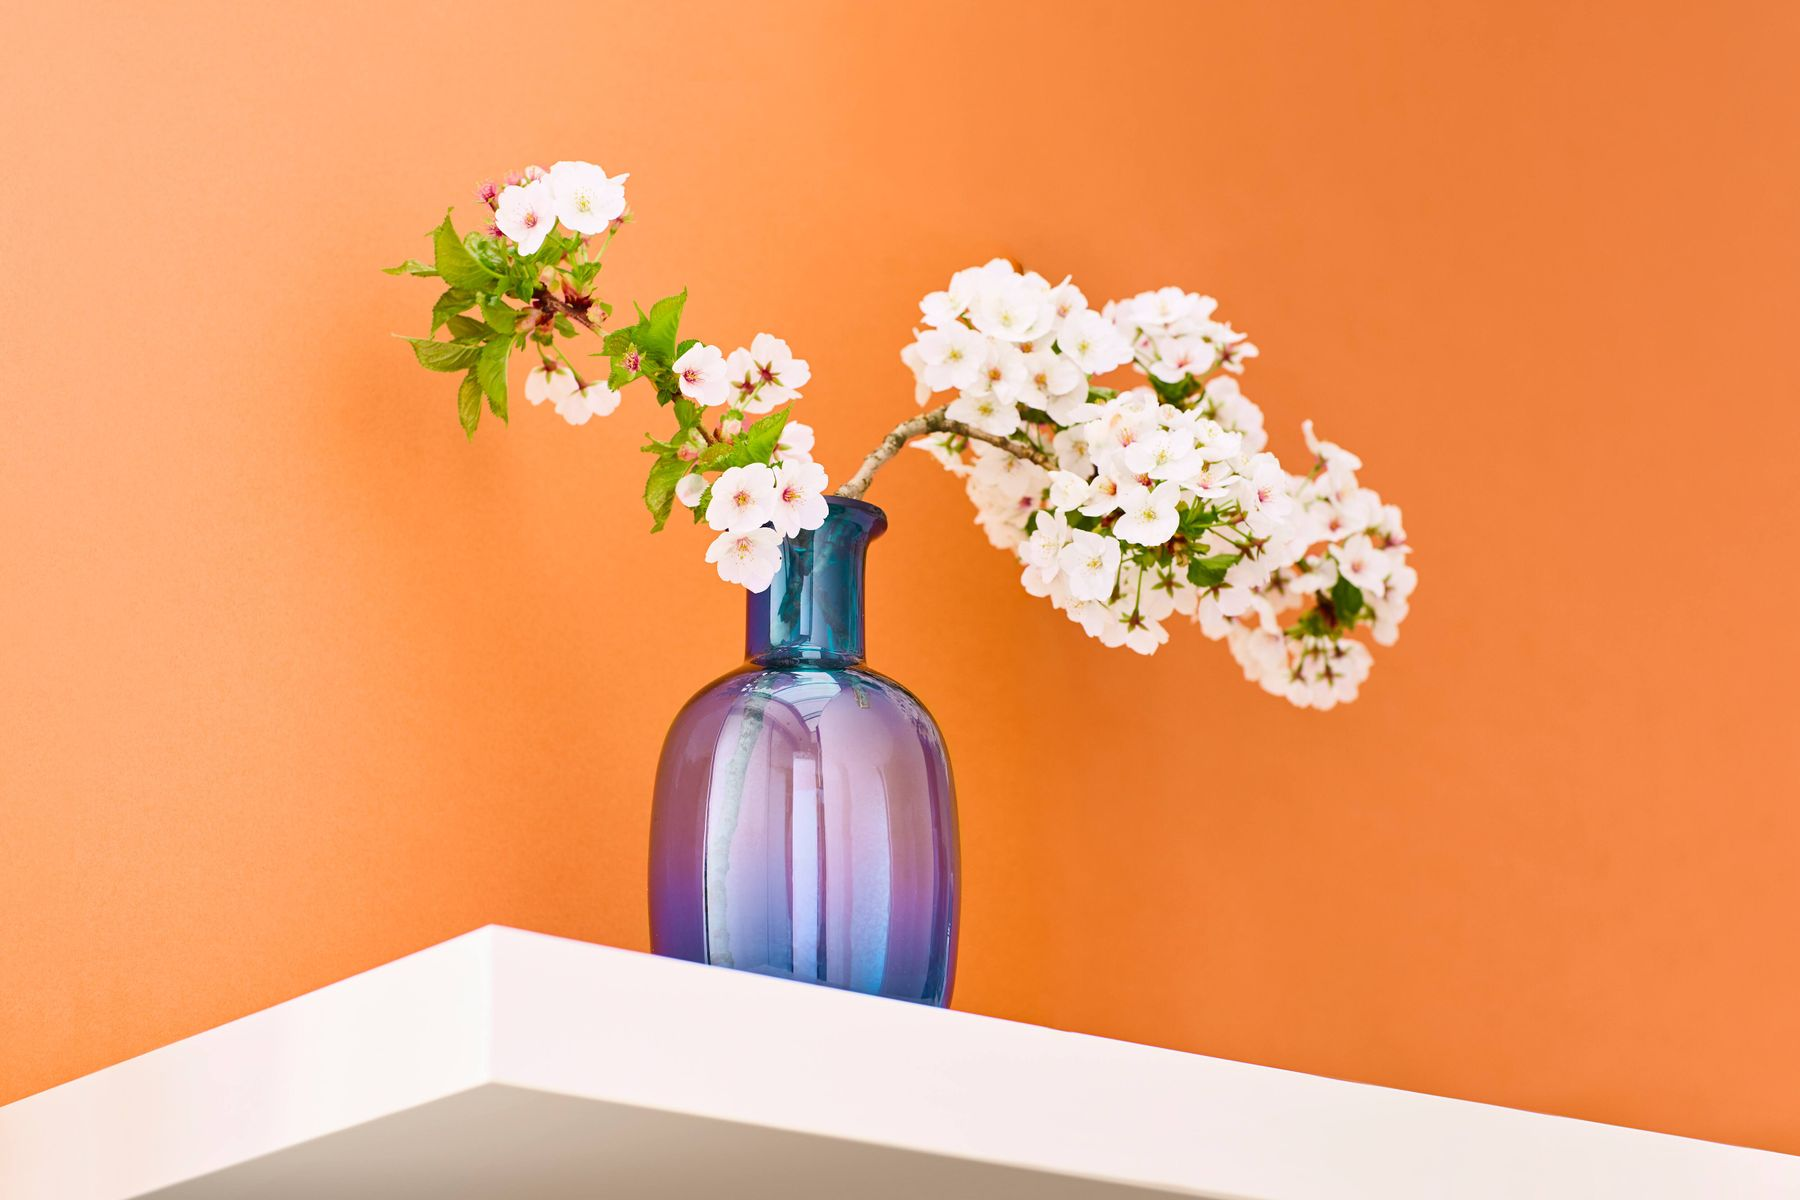 table-decoration-ideas-vase-with-flowers